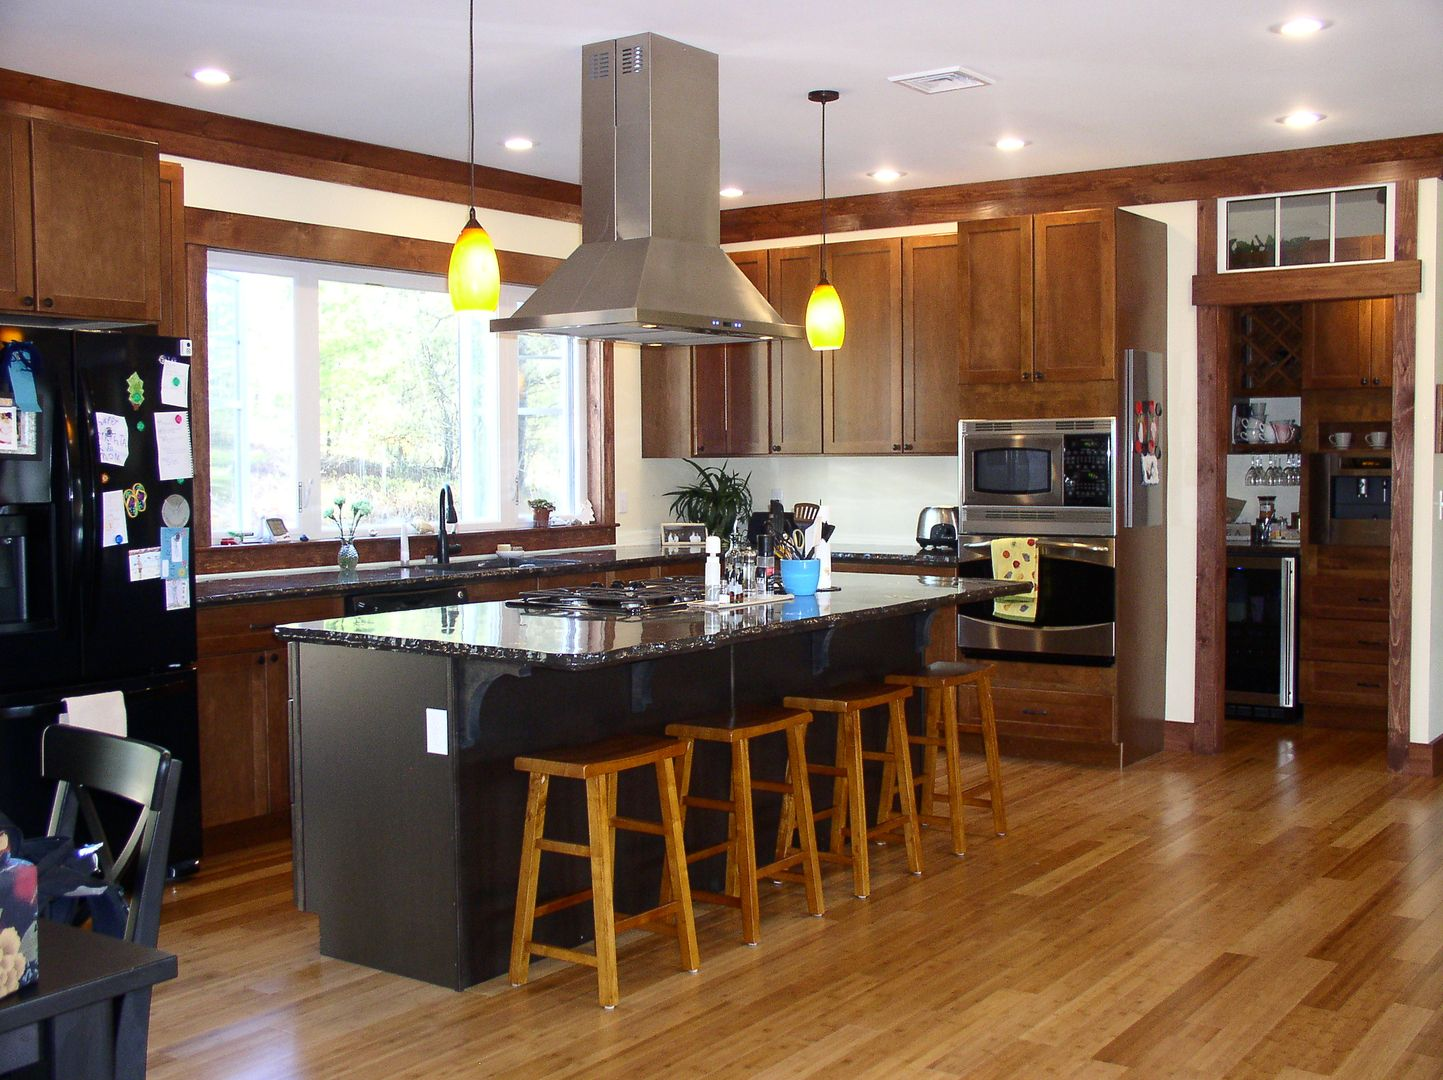 Legacy Wood Shaker Cabinetry, Maybe Toast Or Amaretto?